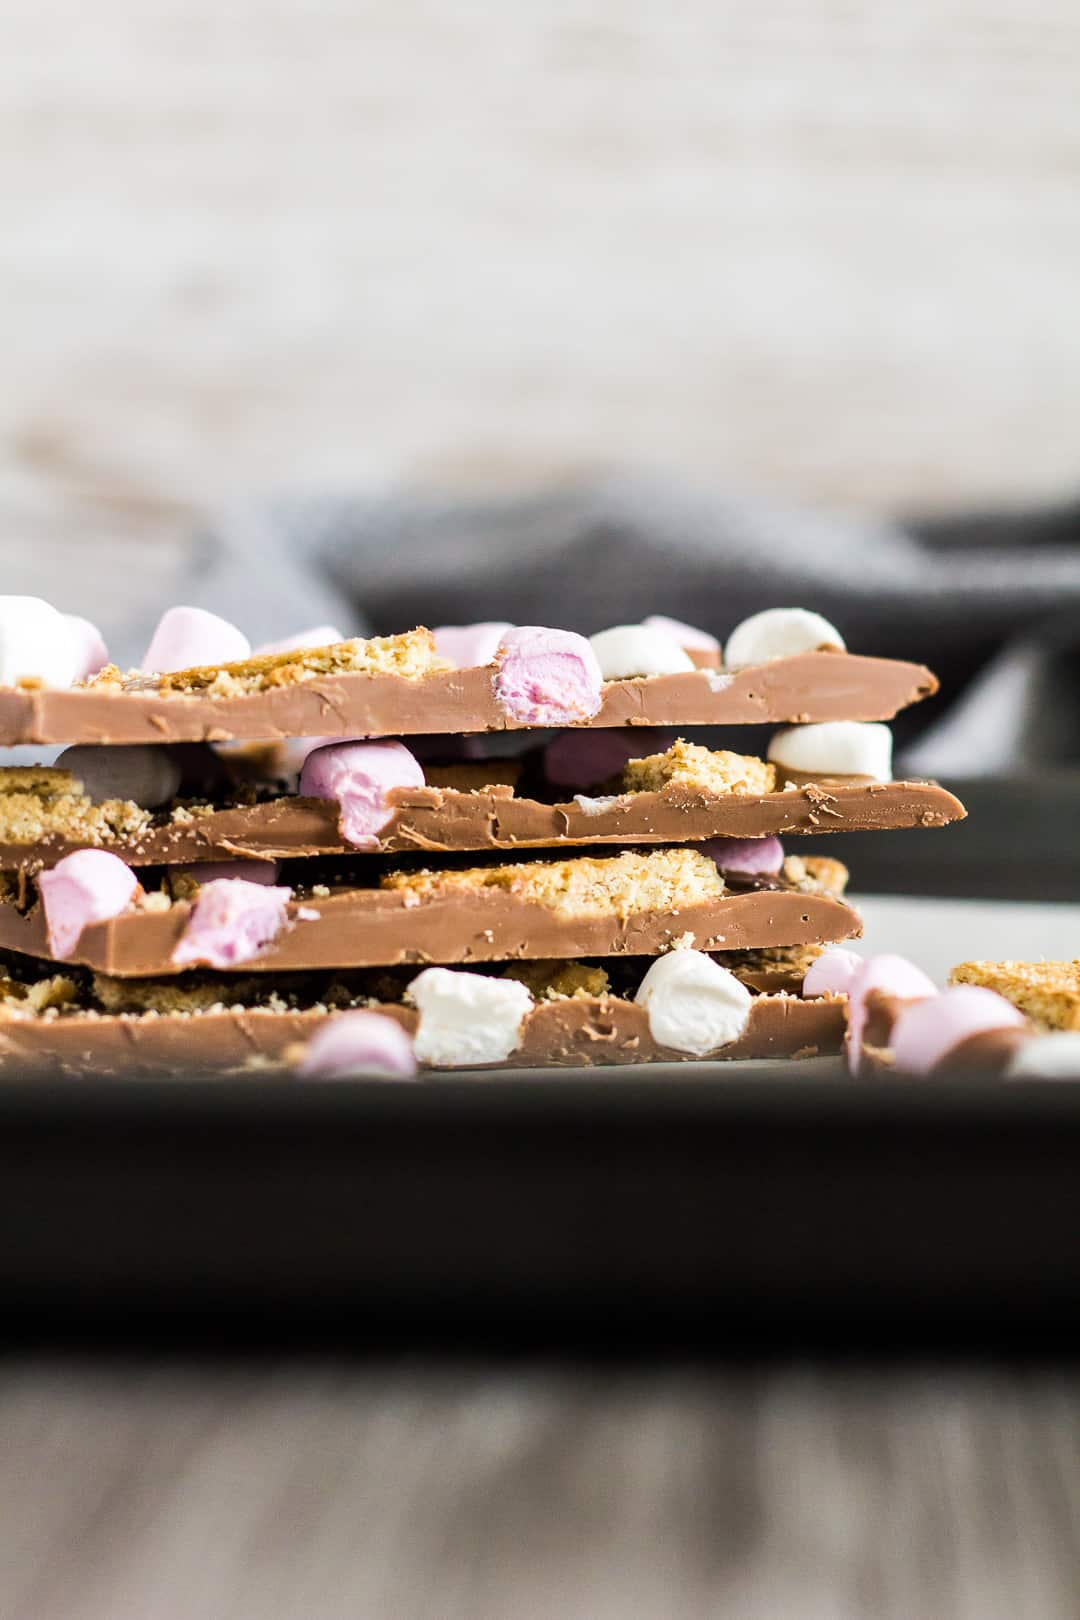 A stack of S'mores Chocolate Bark pieces on a baking tray.